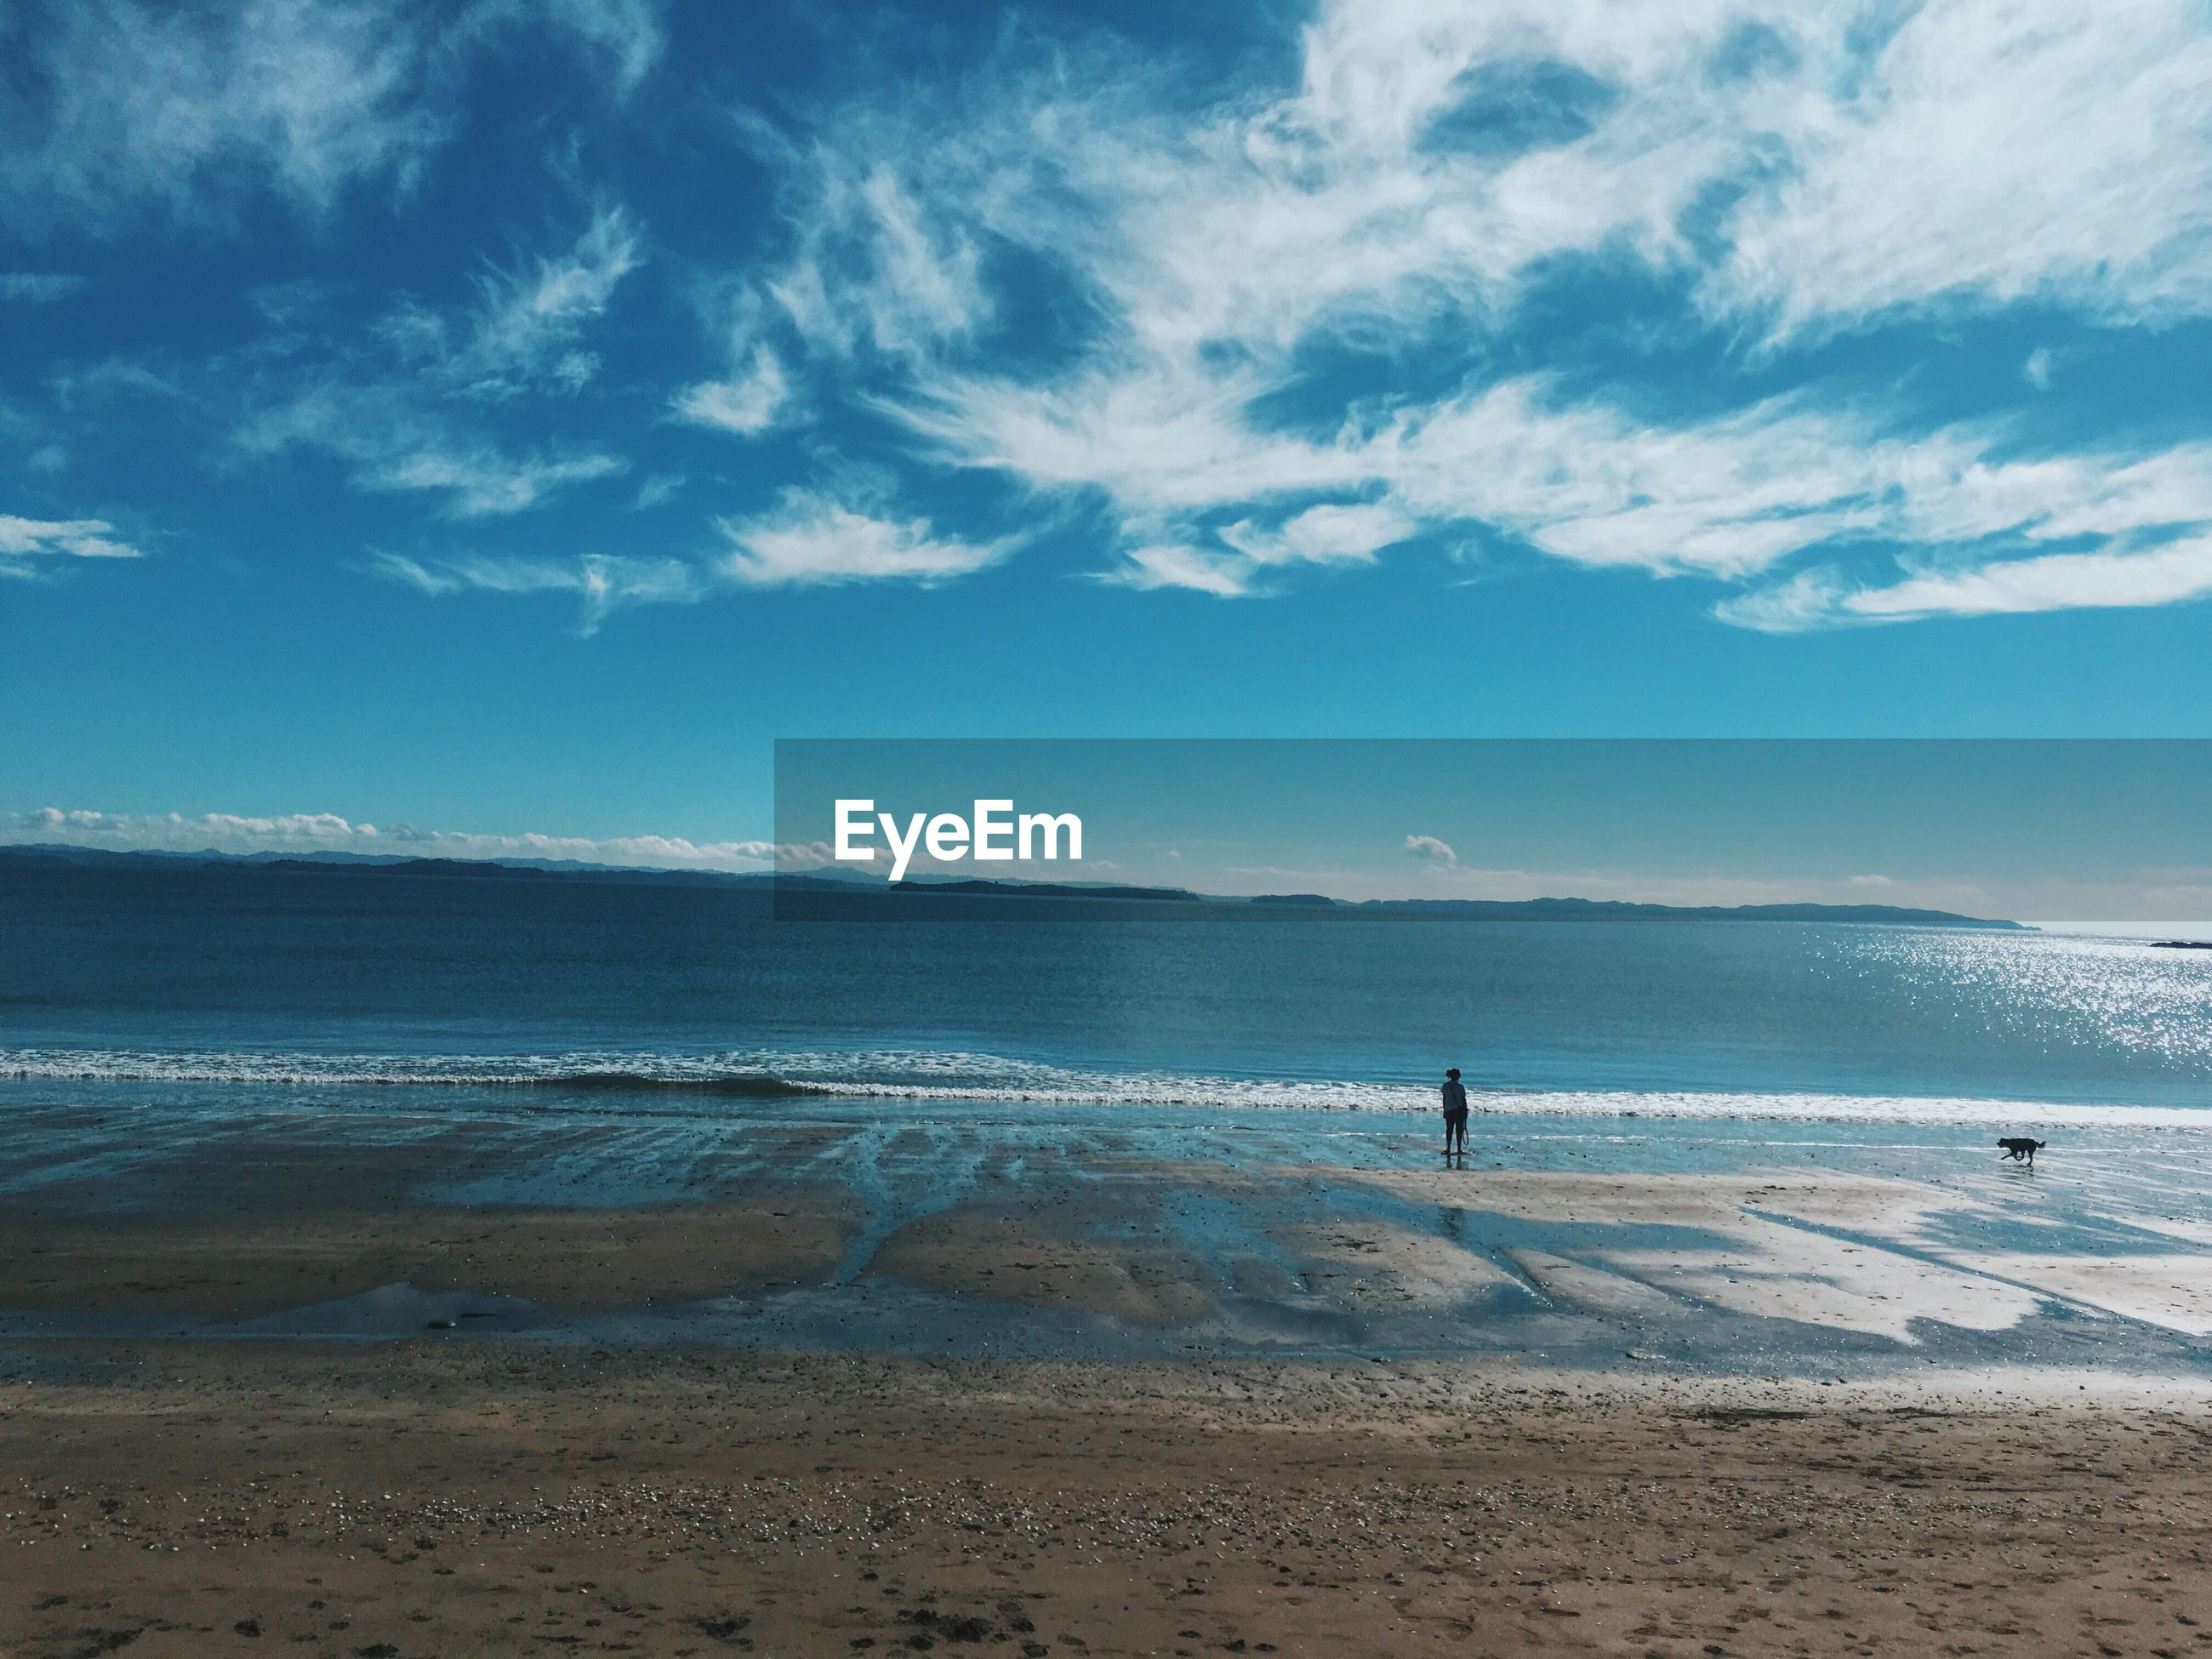 beach, water, tranquil scene, scenics, sky, tranquility, sand, sea, mountain, shore, beauty in nature, blue, coastline, vacations, nature, tourism, solitude, non-urban scene, remote, cloud - sky, travel destinations, calm, outdoors, summer, day, distant, mountain range